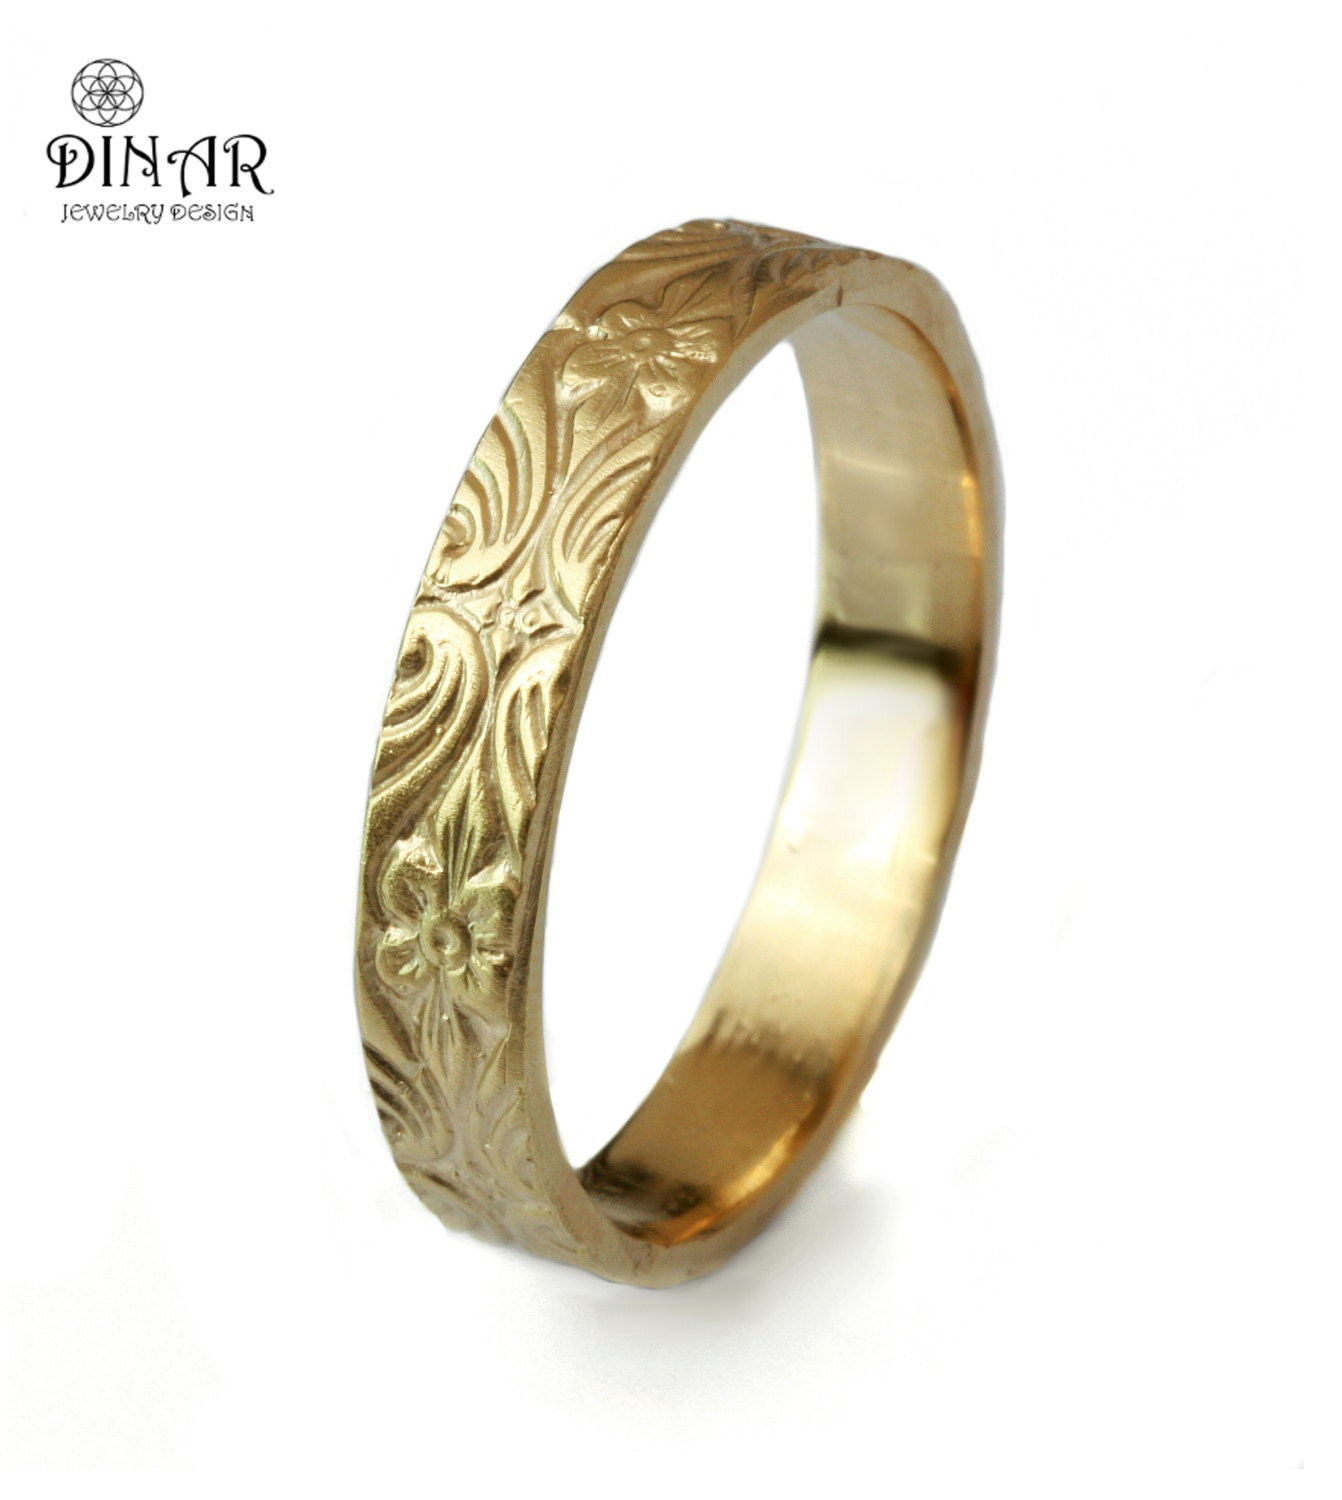 Thin Vintage Inspired Leafs And Flowers Gold Ring For Women Etsy